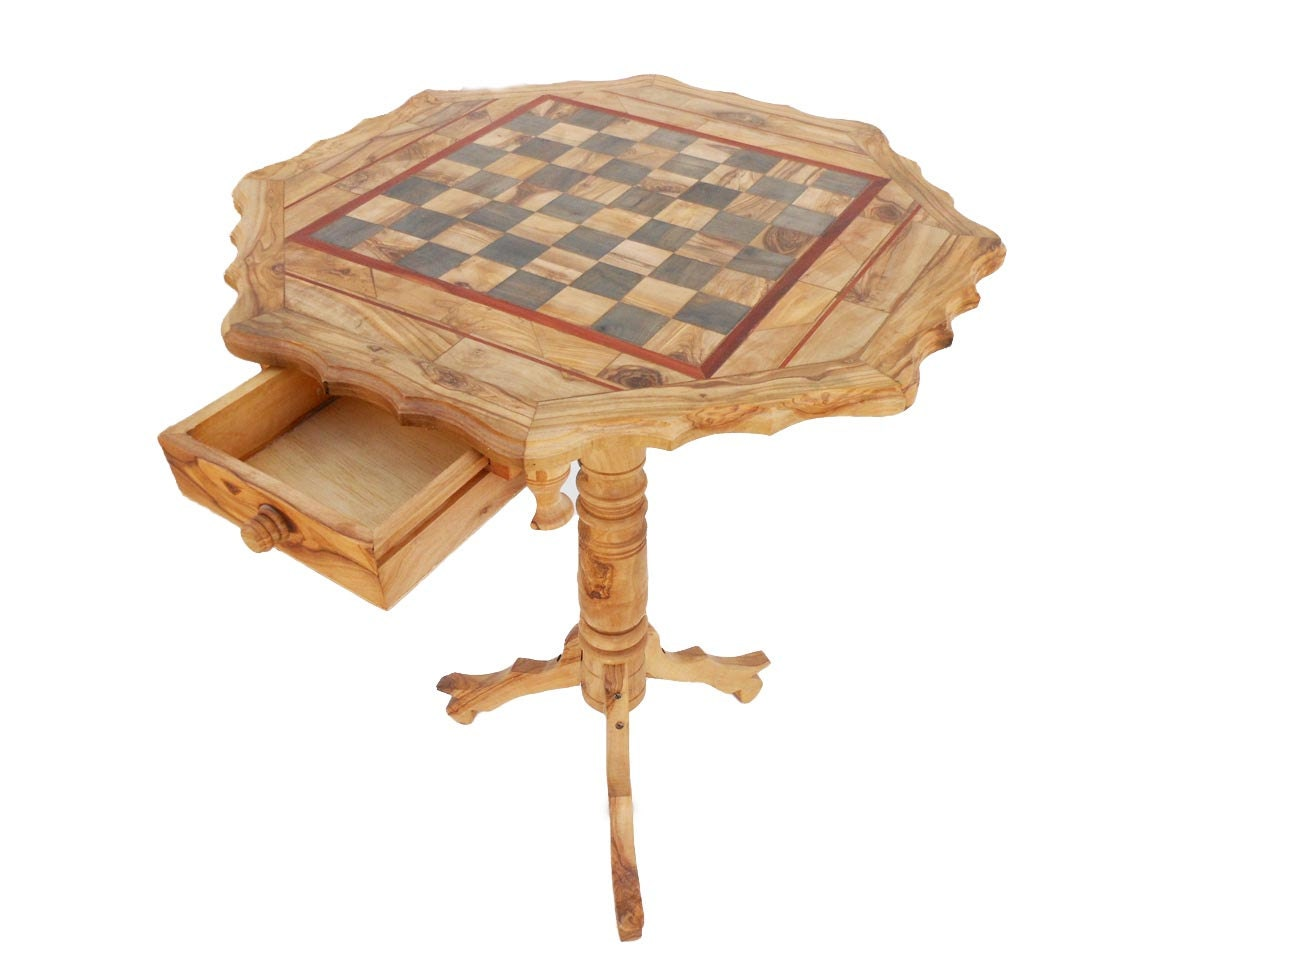 Olive wood chess table wooden rustic exotic by tunisiahandmade - Wooden chess tables ...